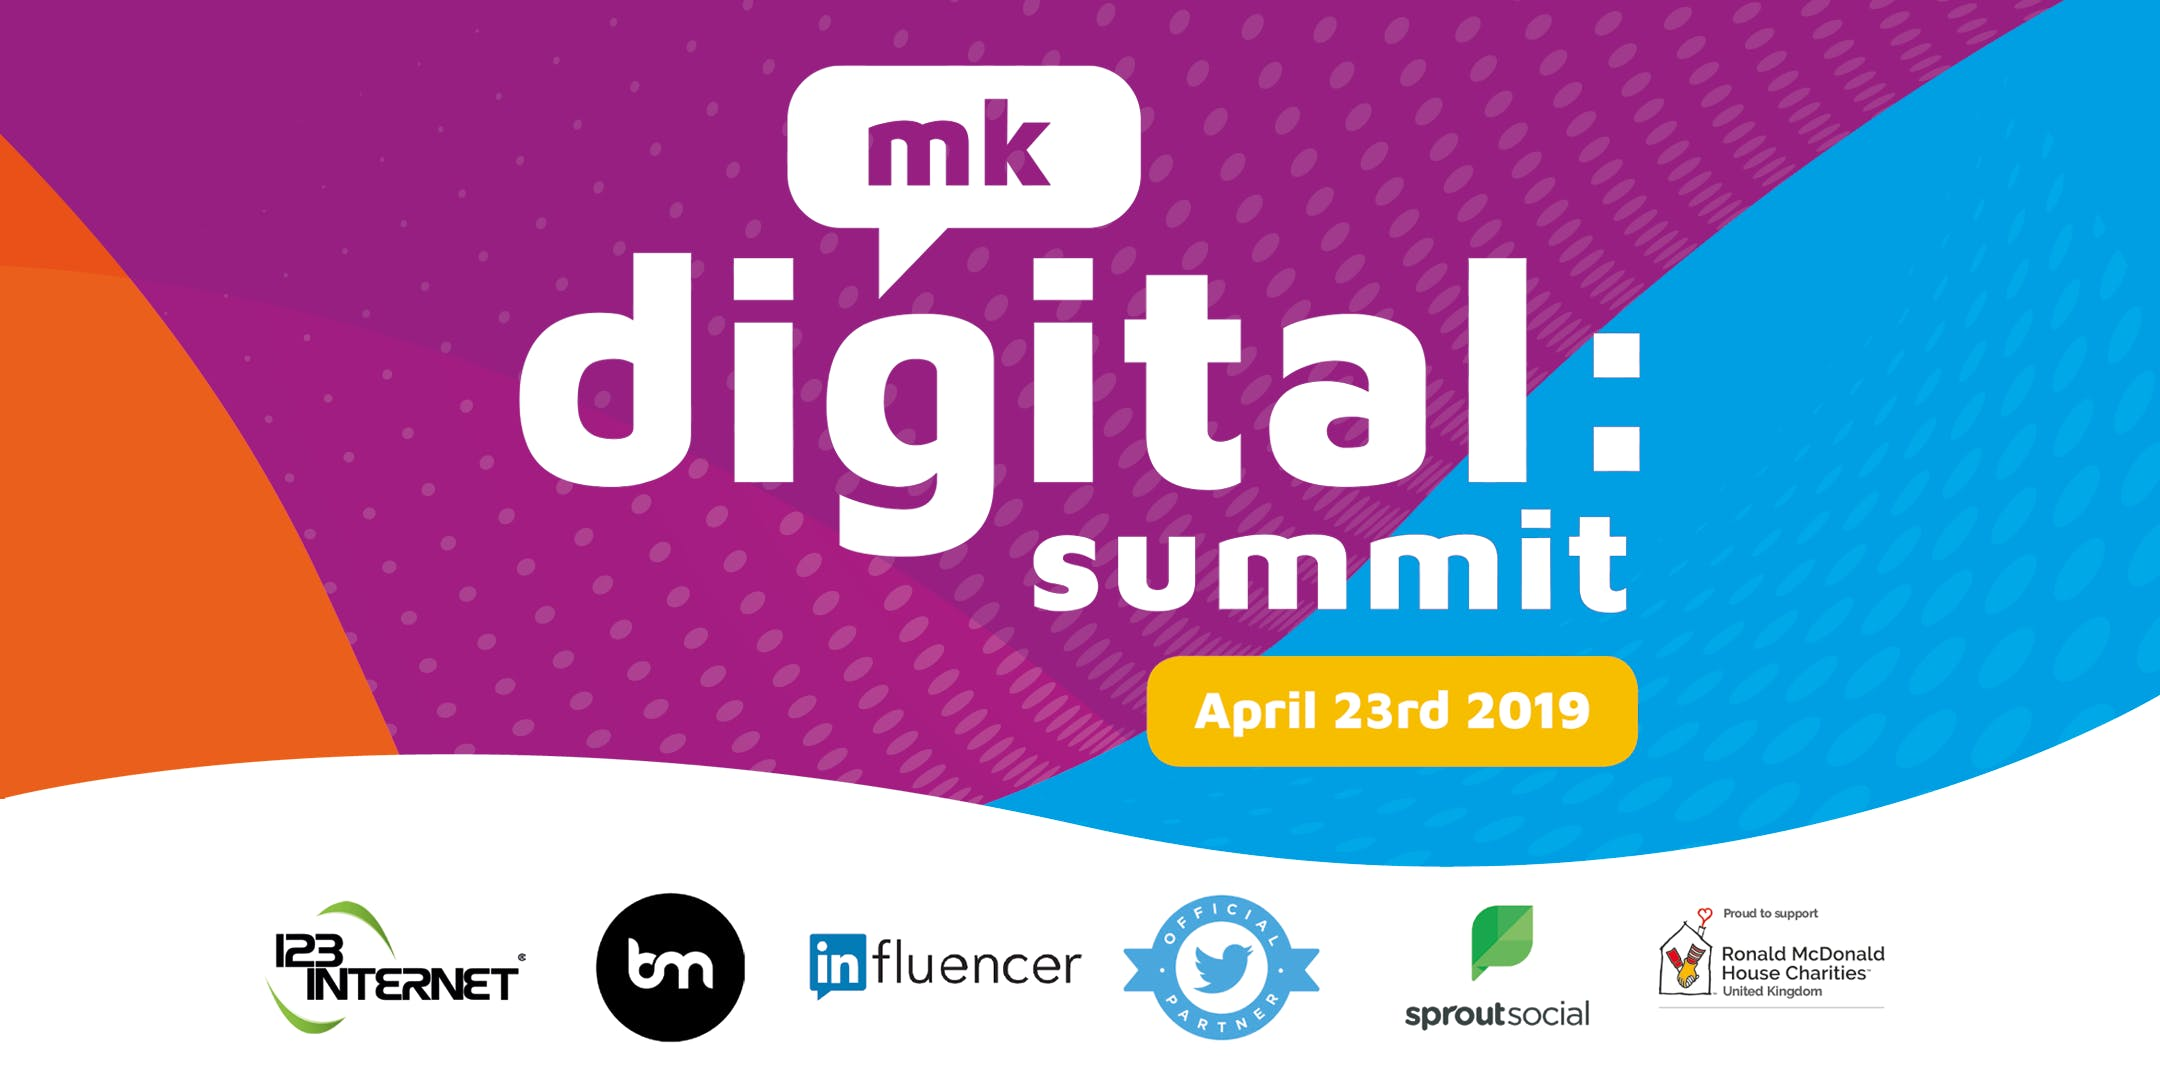 MK Digital Summit 2019 - Digital Transformati